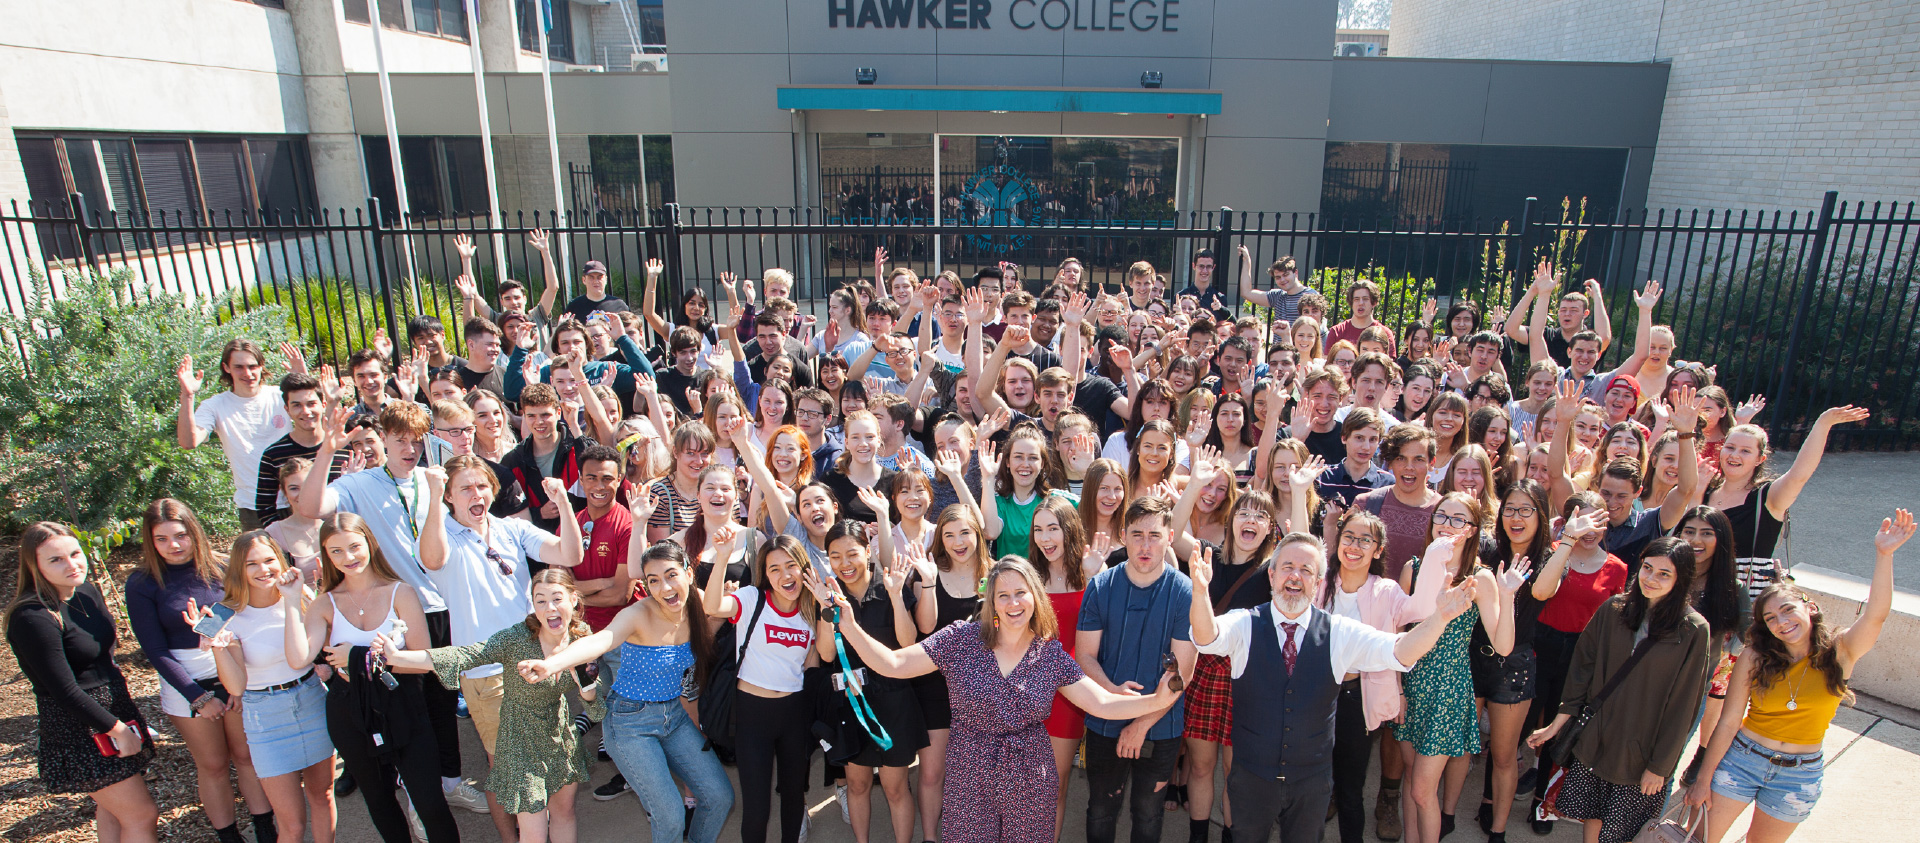 Hawker College Graduates Photo